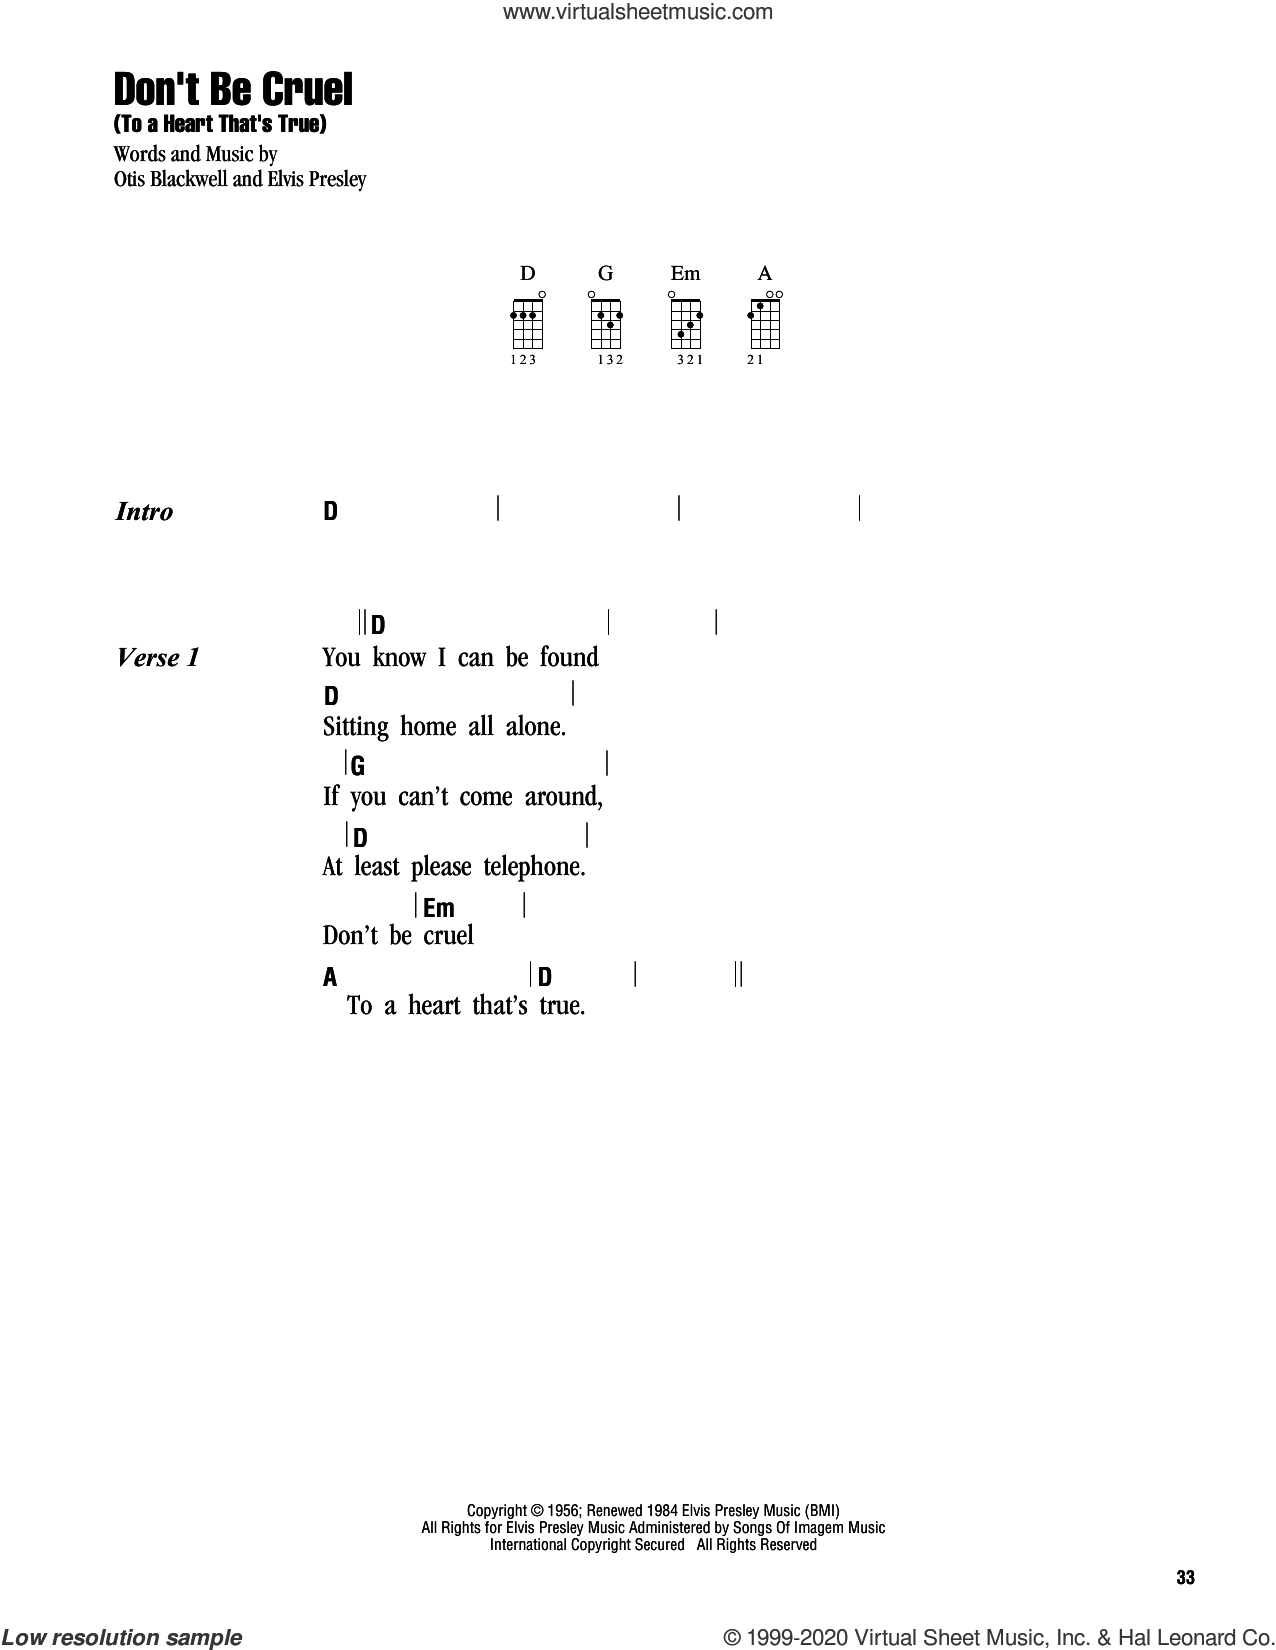 Don't Be Cruel (To A Heart That's True) sheet music for ukulele (chords) by Elvis Presley, Cheap Trick and Otis Blackwell, intermediate skill level